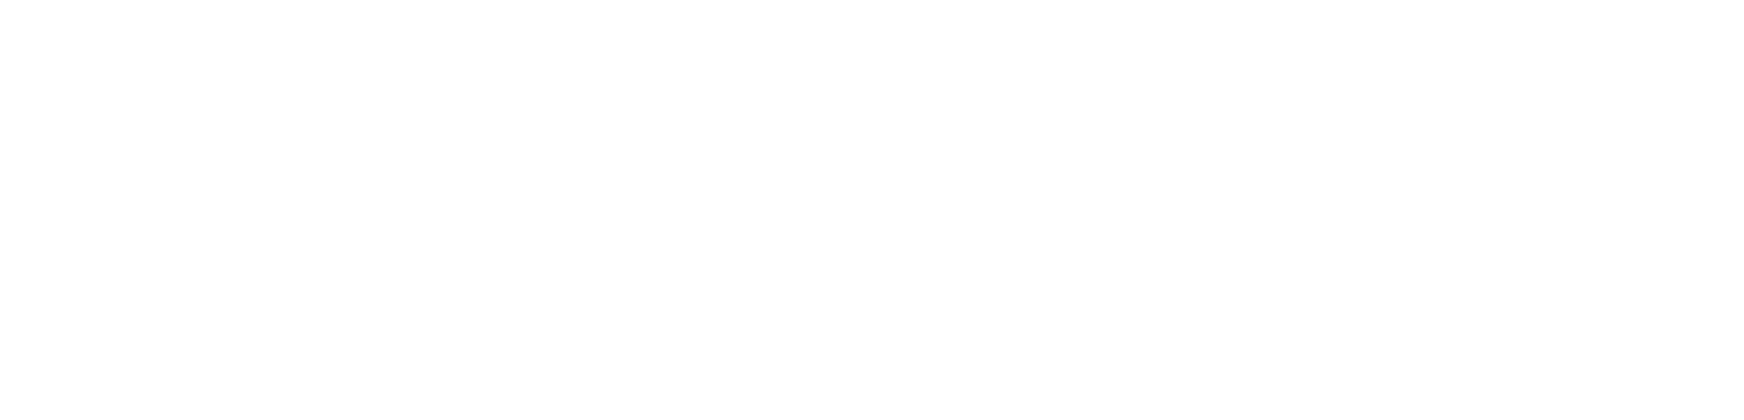 en - audio consulting group